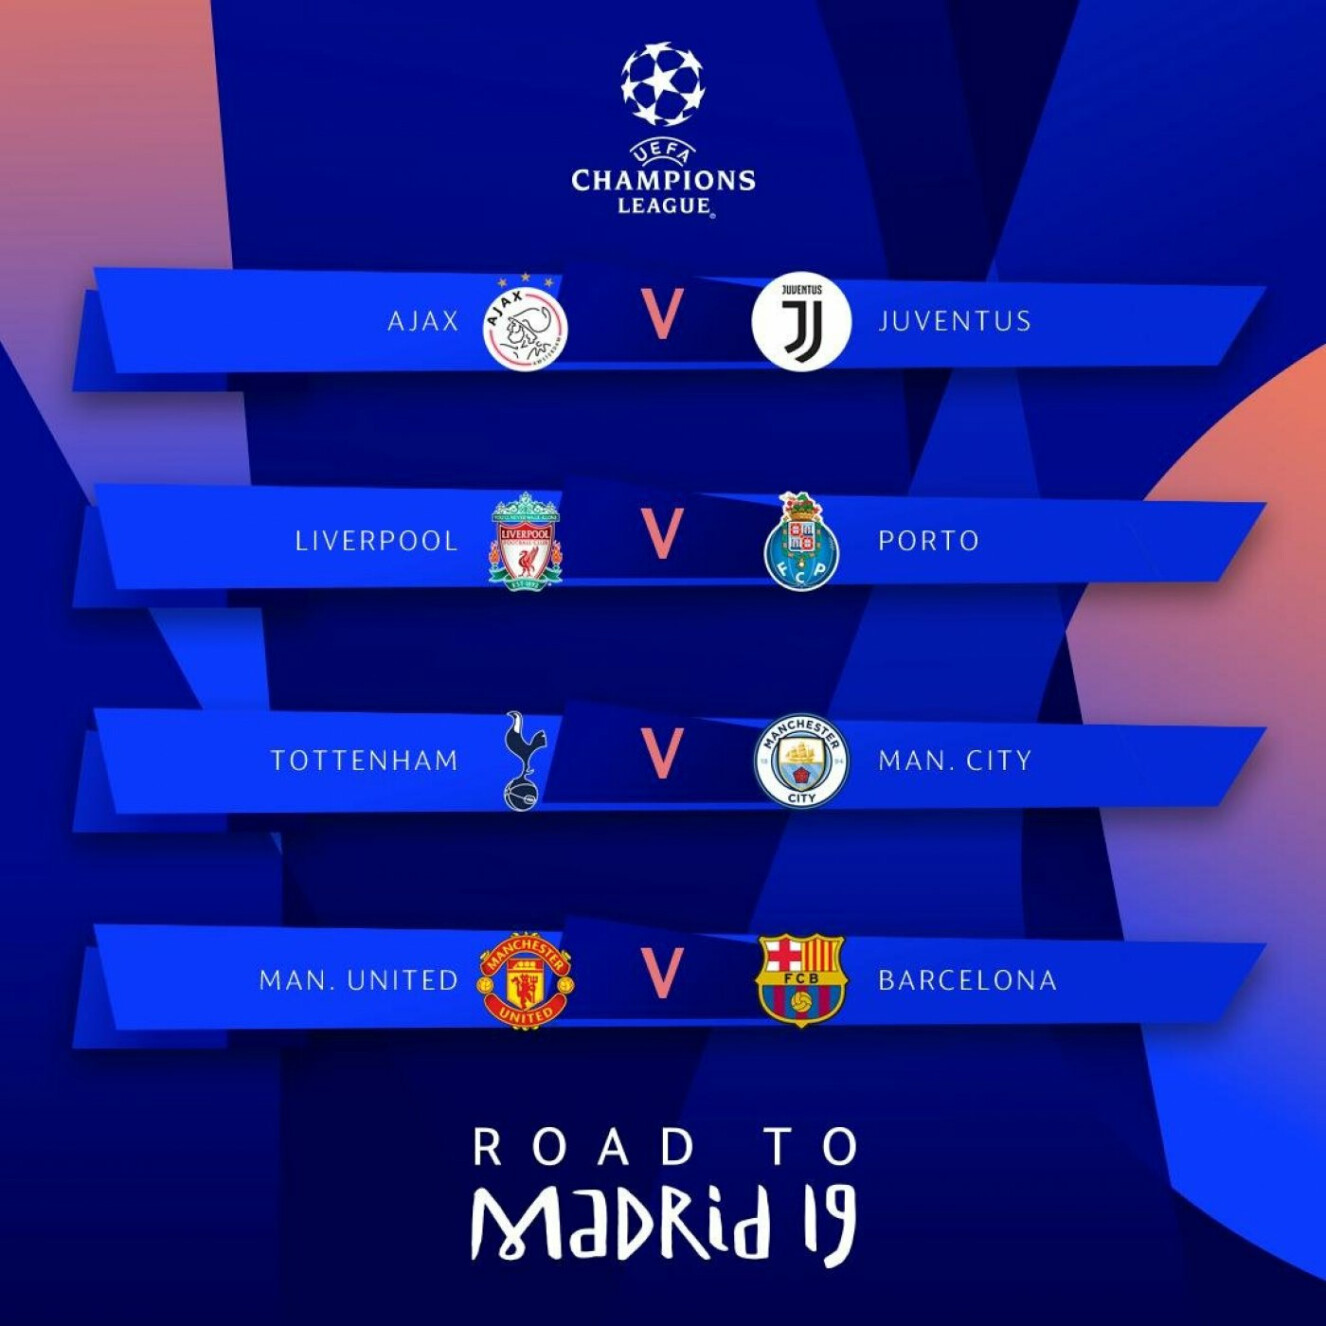 Champions League quarterfinals draw: Man City get Tottenham, while Barcelona draw Man Utd